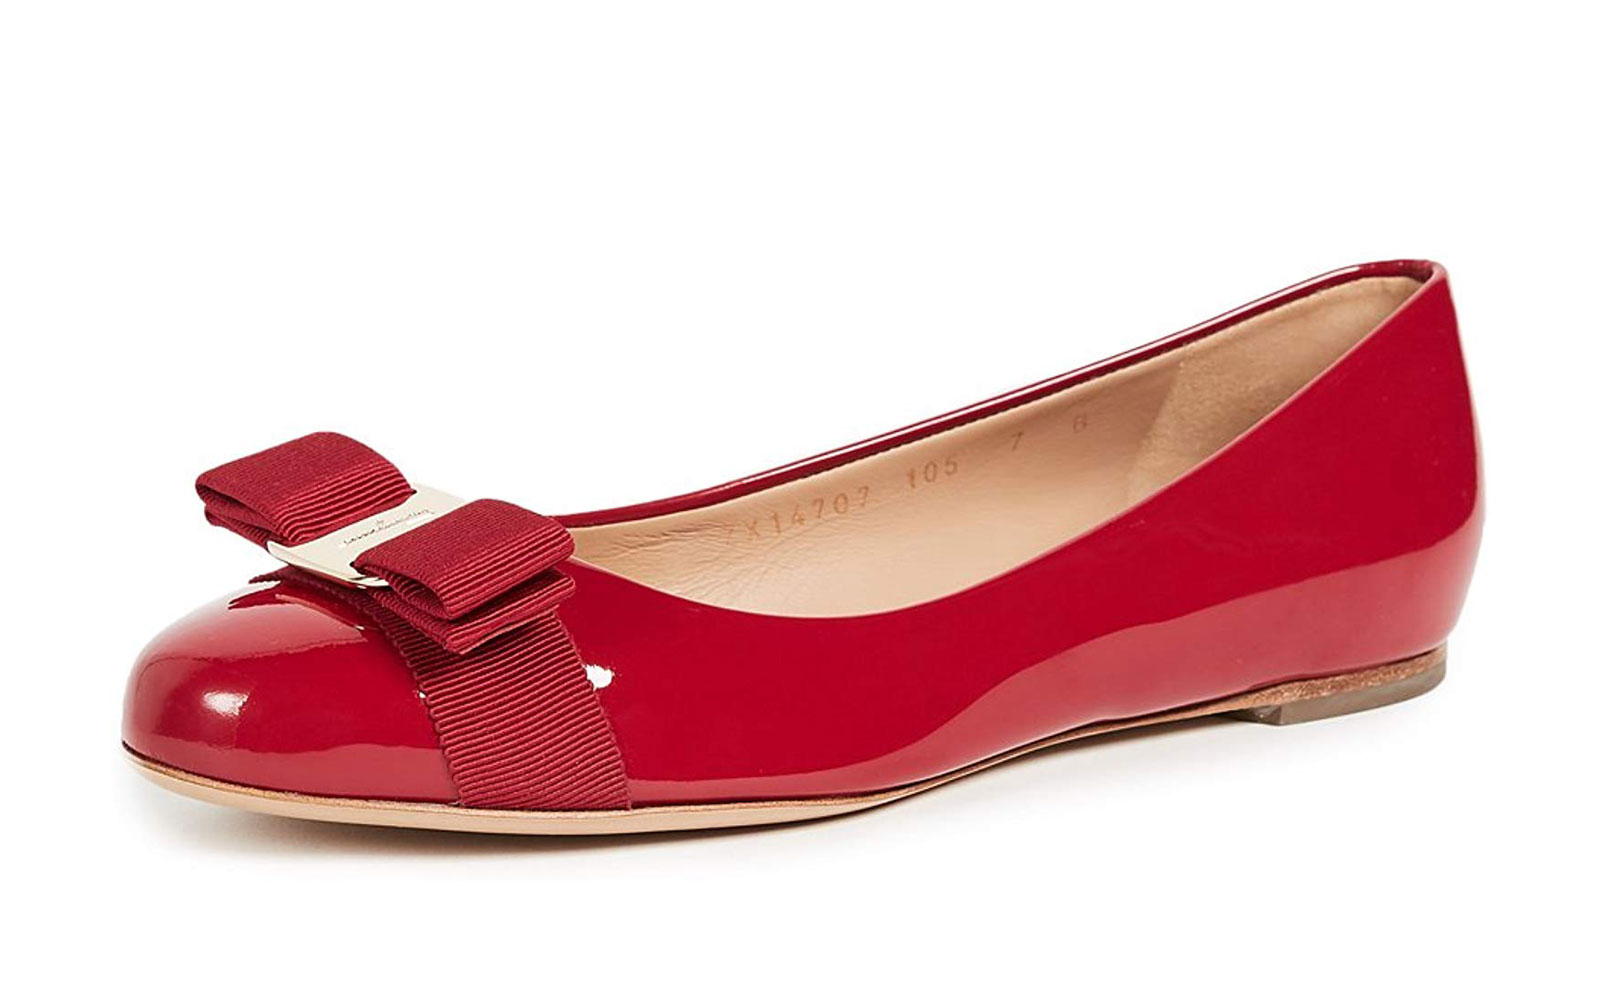 Red Leather Ballet Flats with Bow